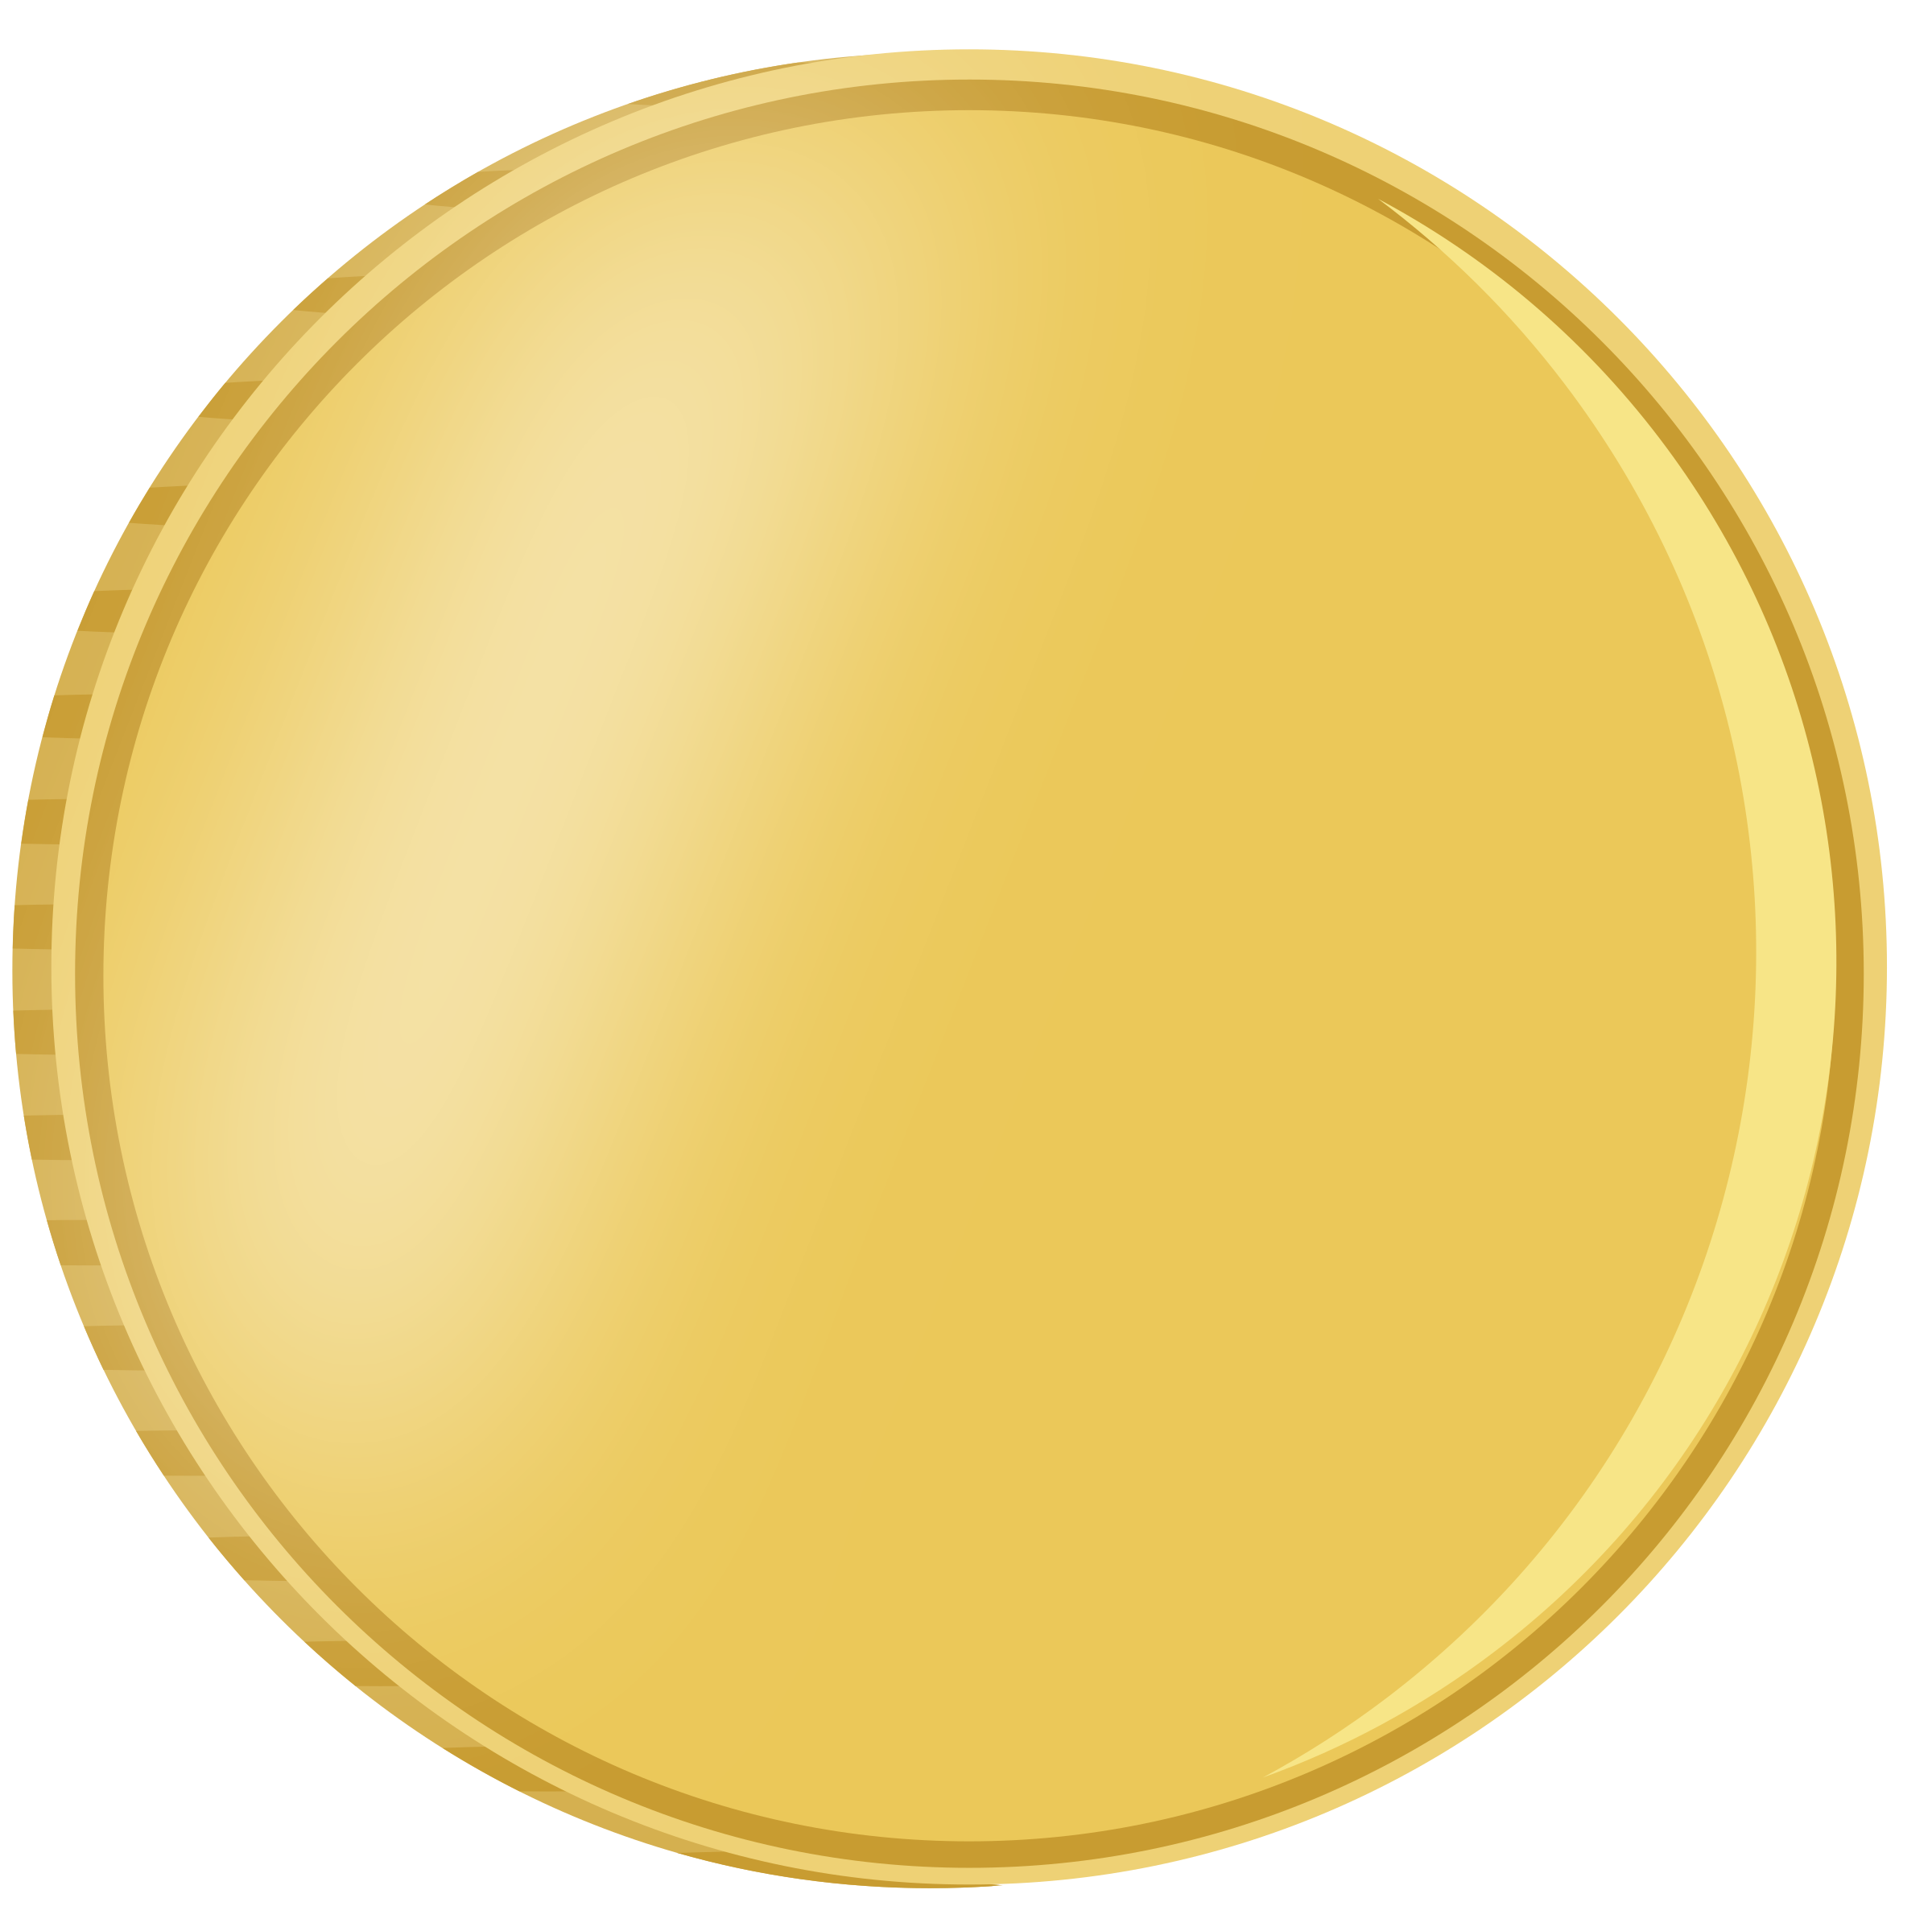 Coin sprite png. Blank transparent images pluspng